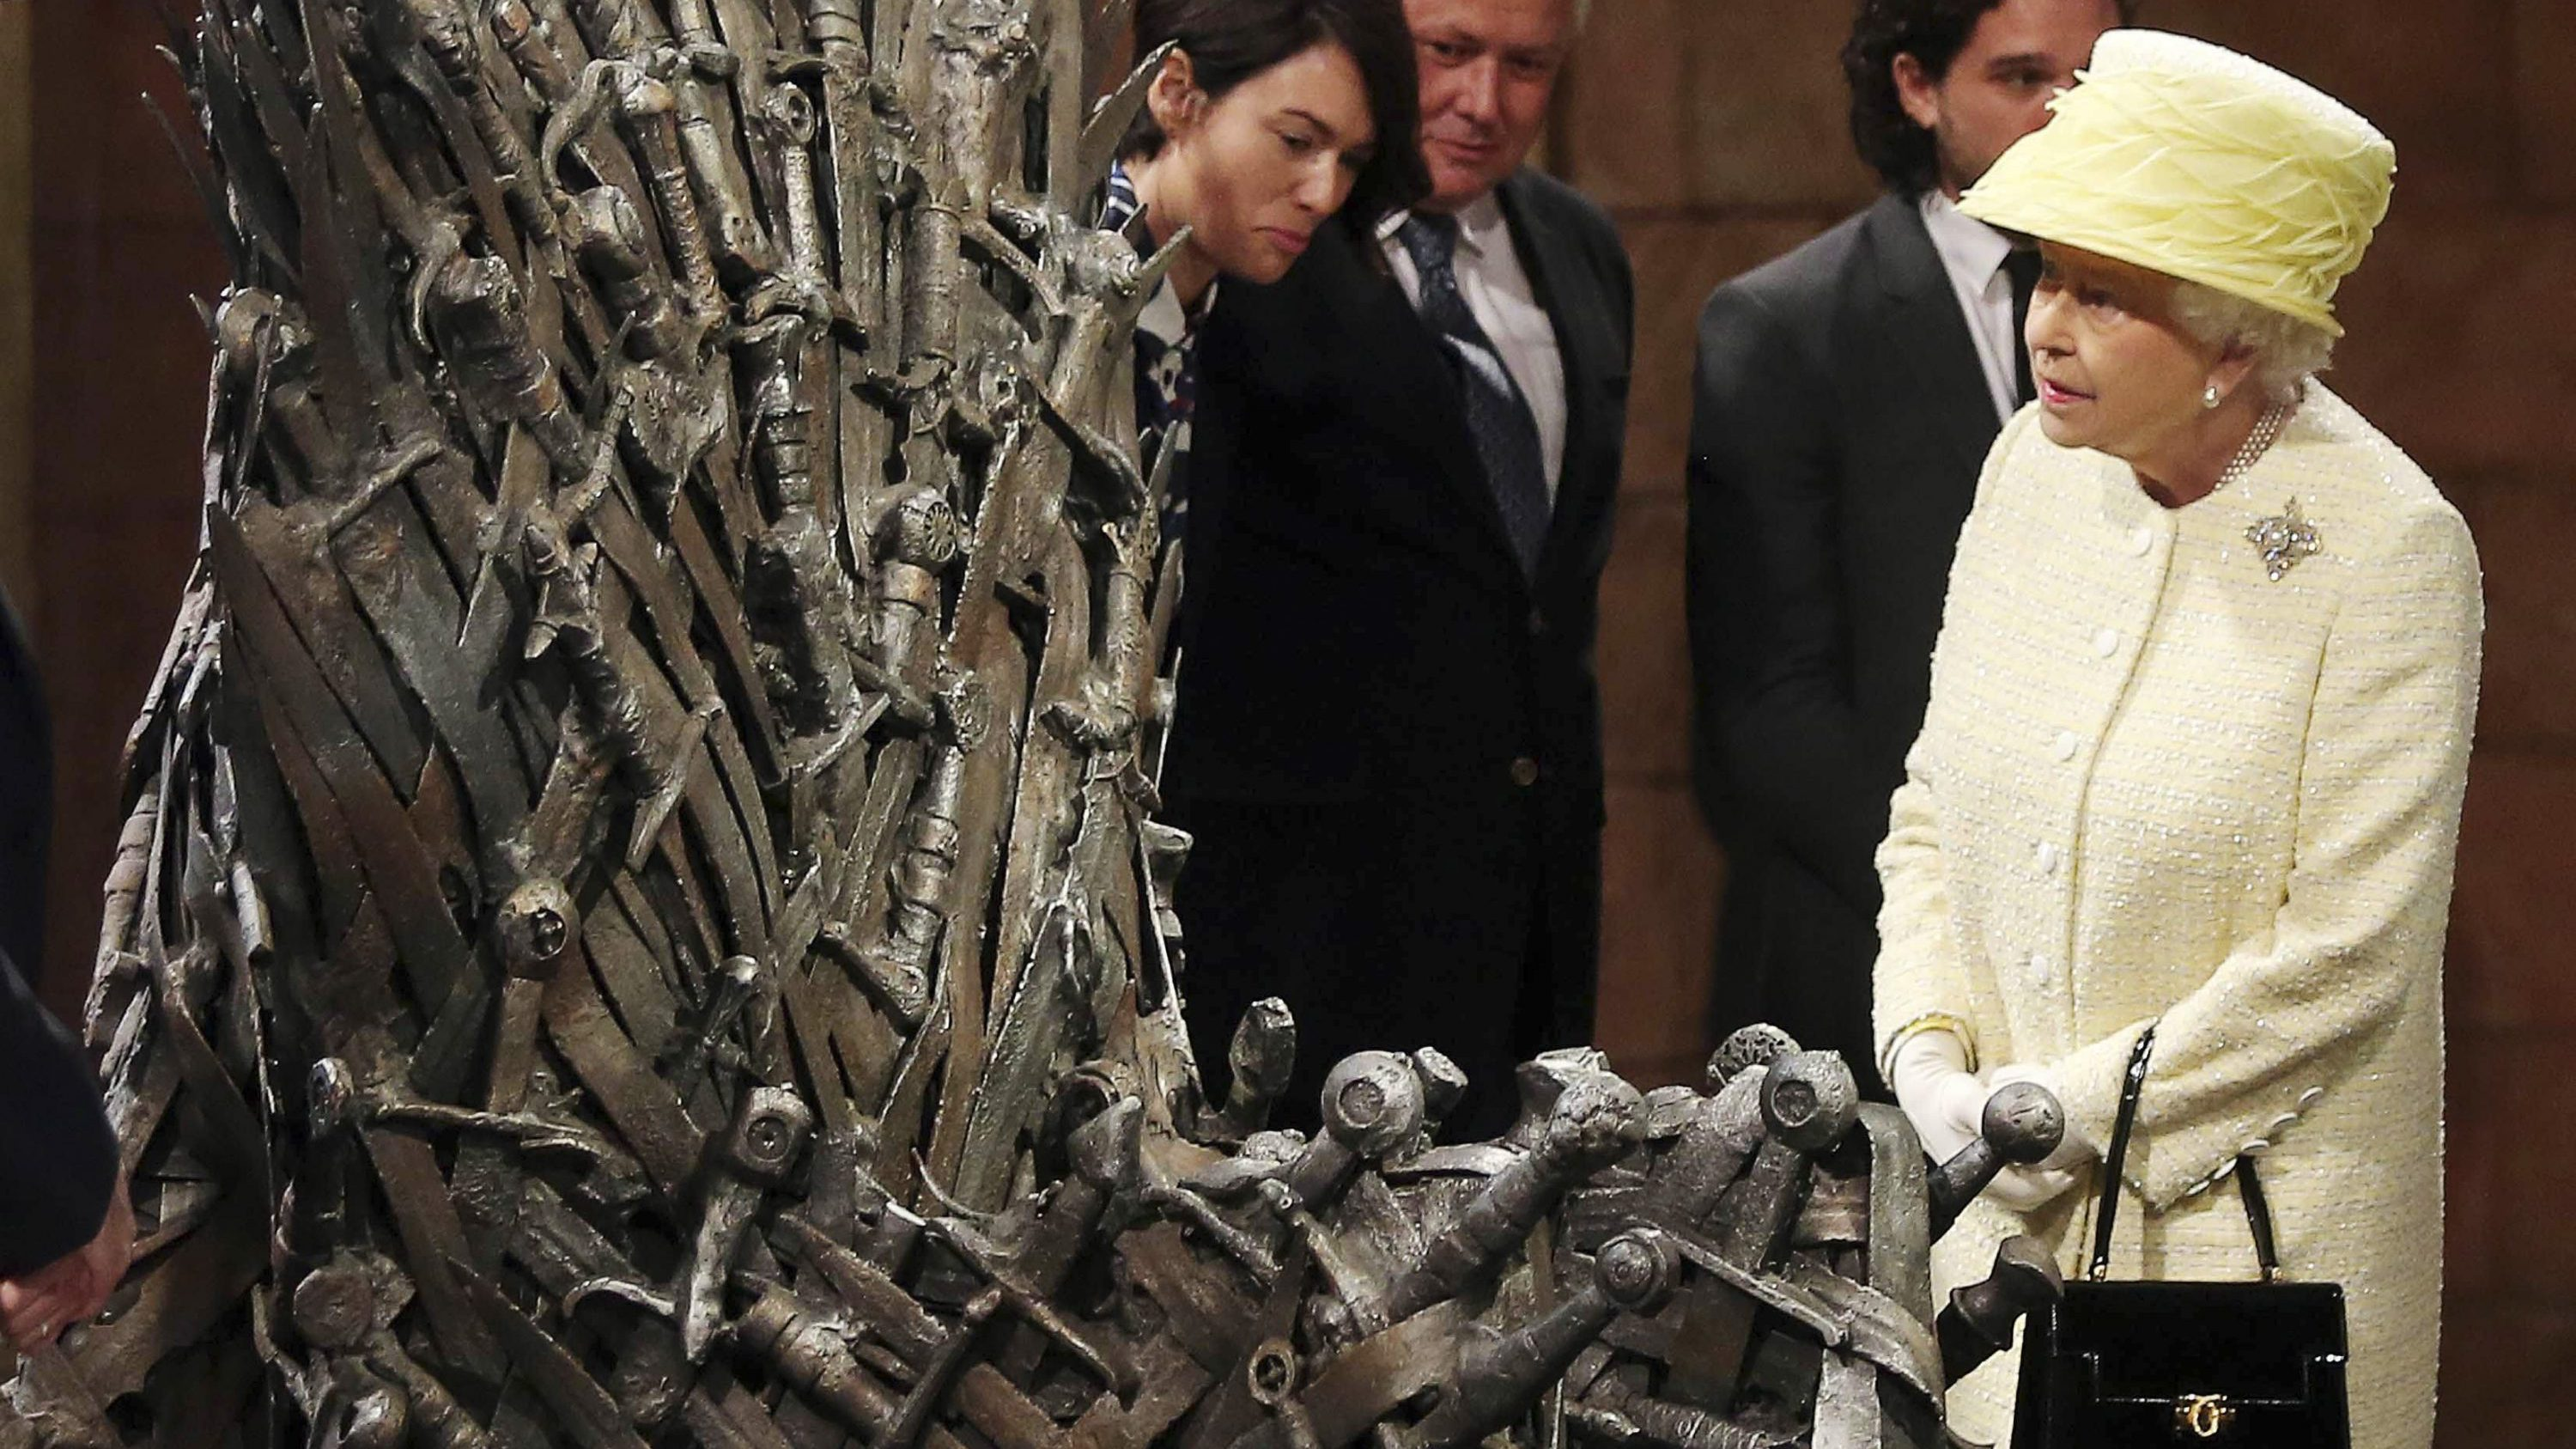 iron throne chair low seated concert chairs who will win the in game of thrones real life no queen elizabeth and